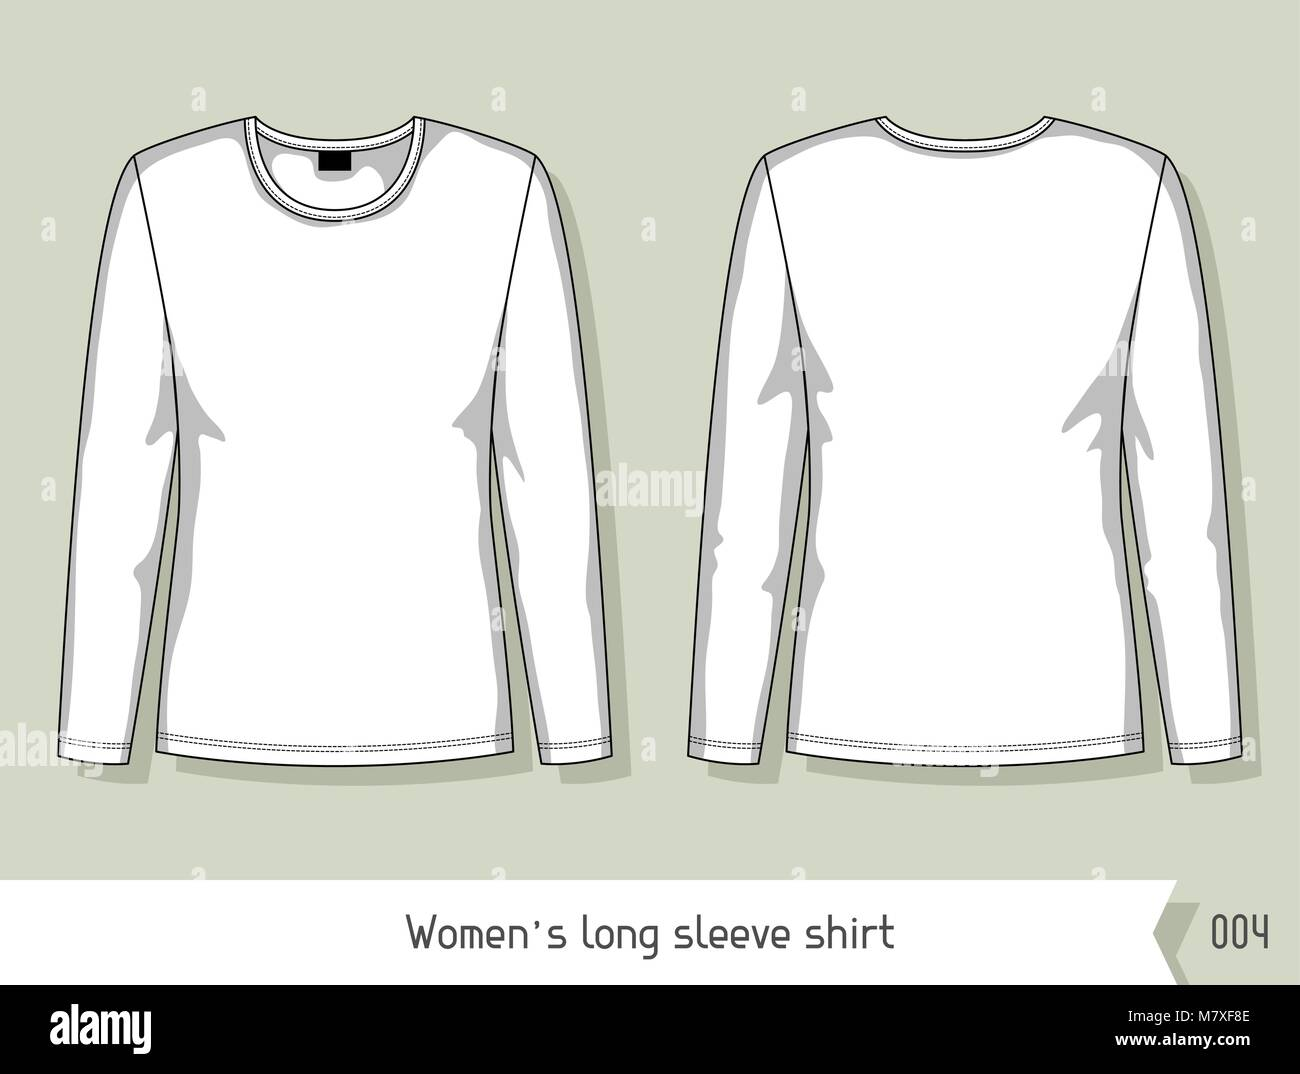 Women Long Sleeve Shirt Template For Design Easily Editable By - Design a shirt template